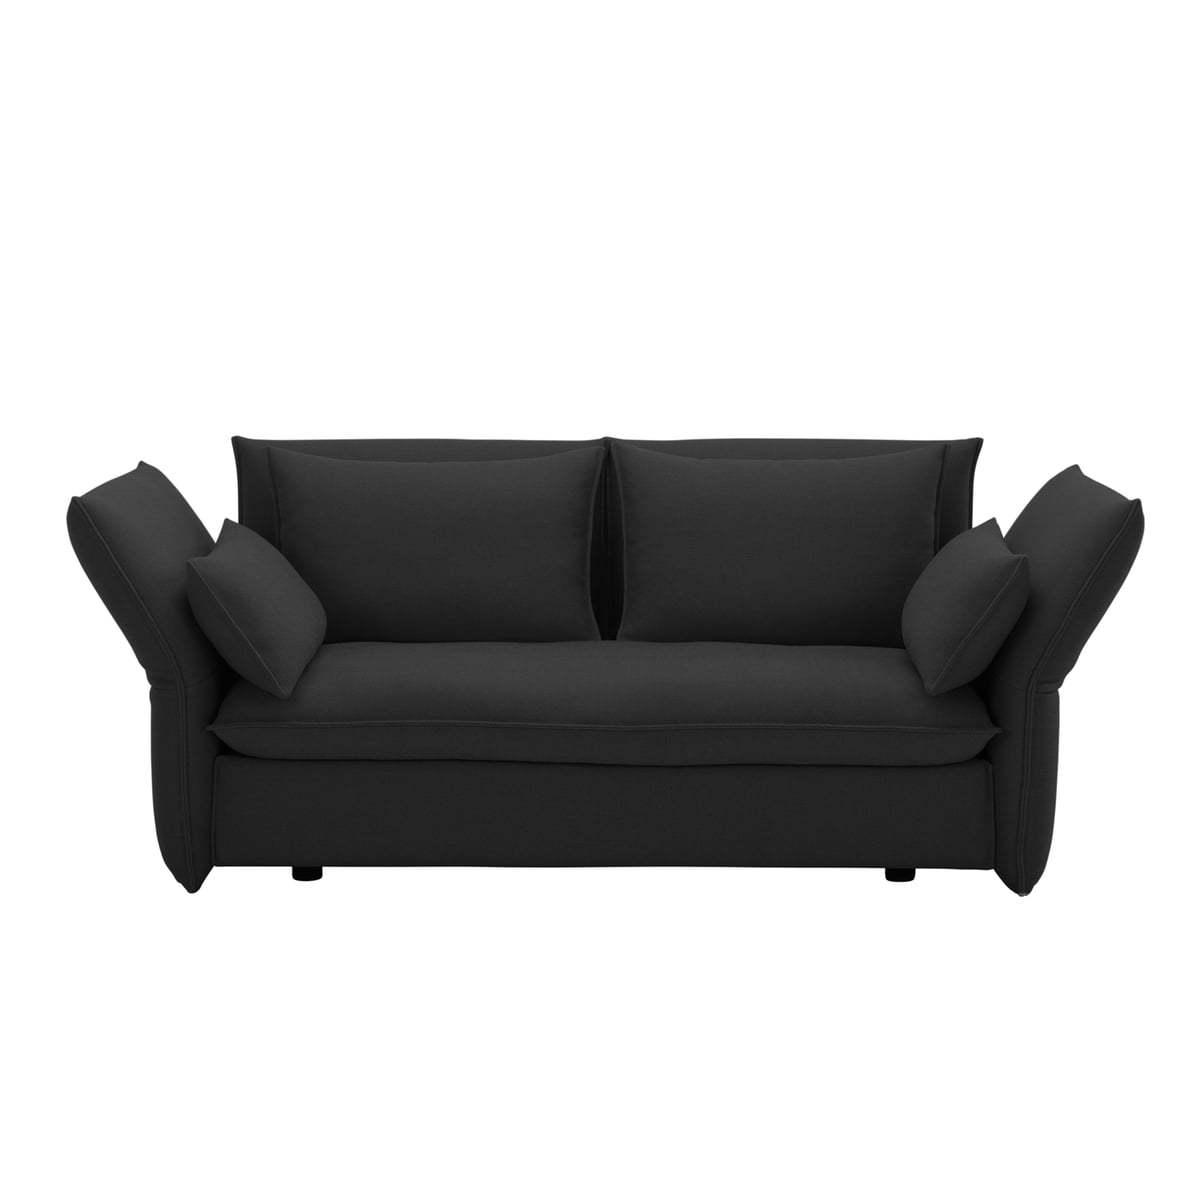 mariposa sofa 2 5 sitzer von vitra im shop. Black Bedroom Furniture Sets. Home Design Ideas